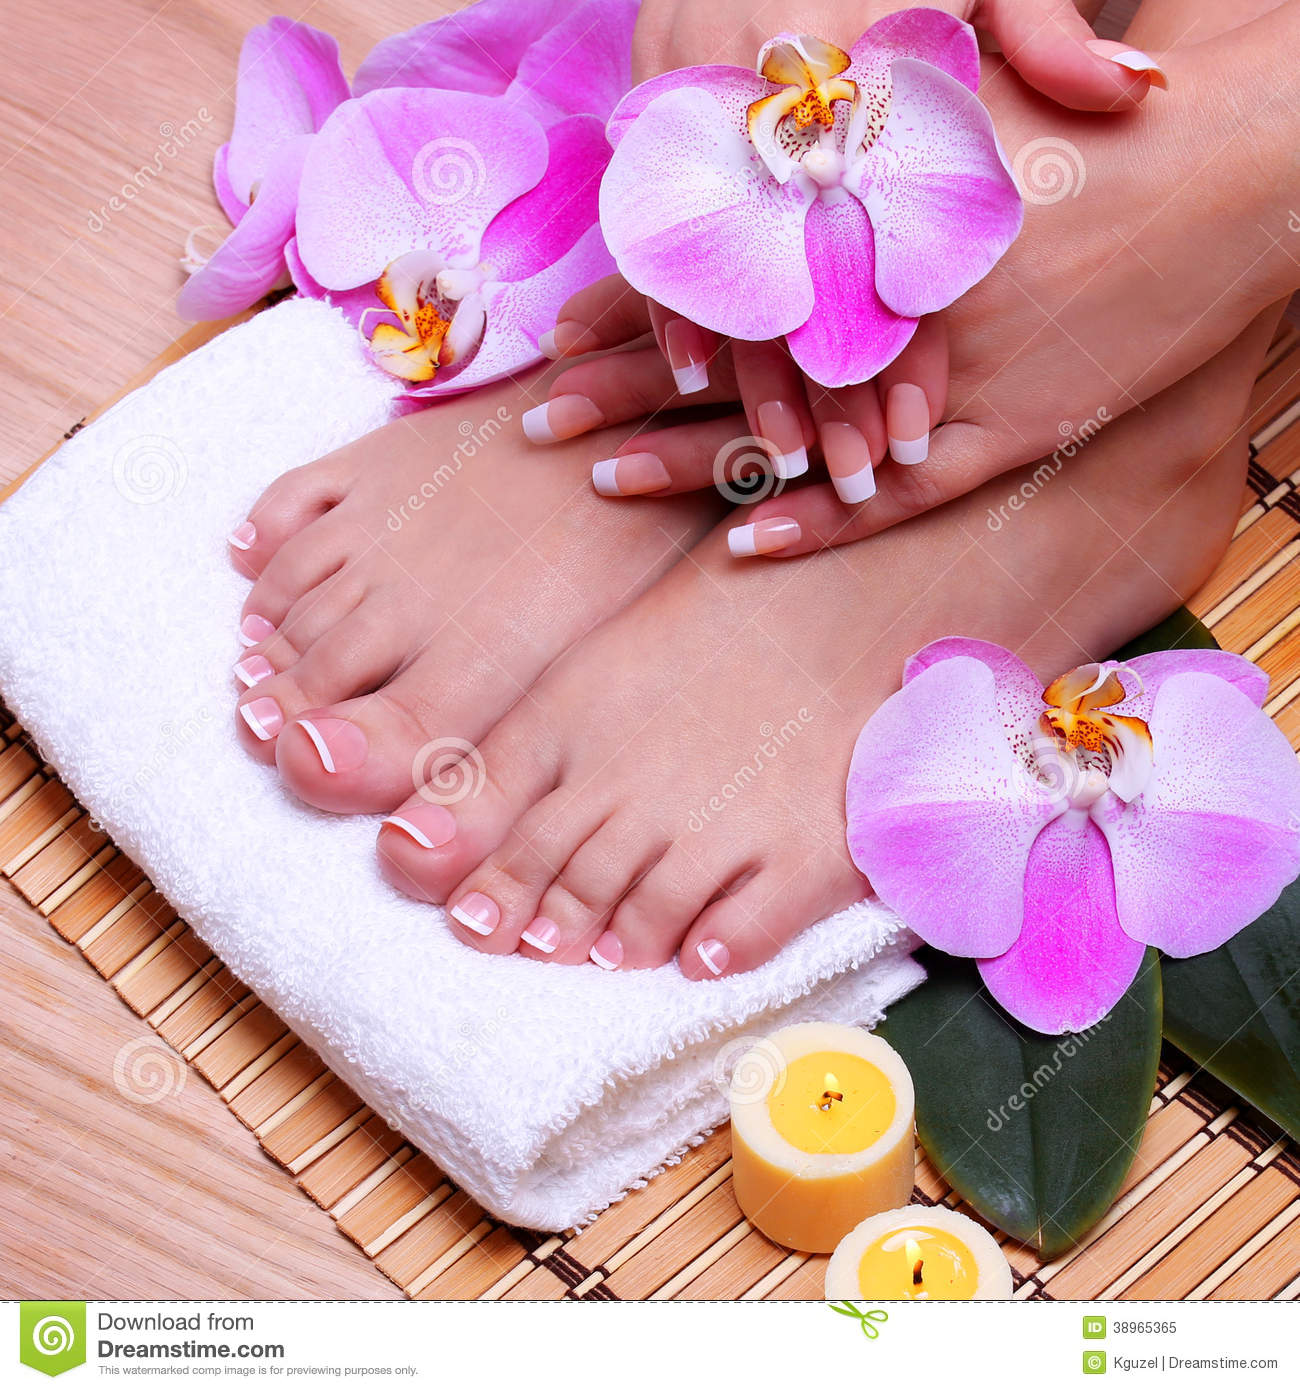 French Manicure on Beautiful Female Feet and Hands